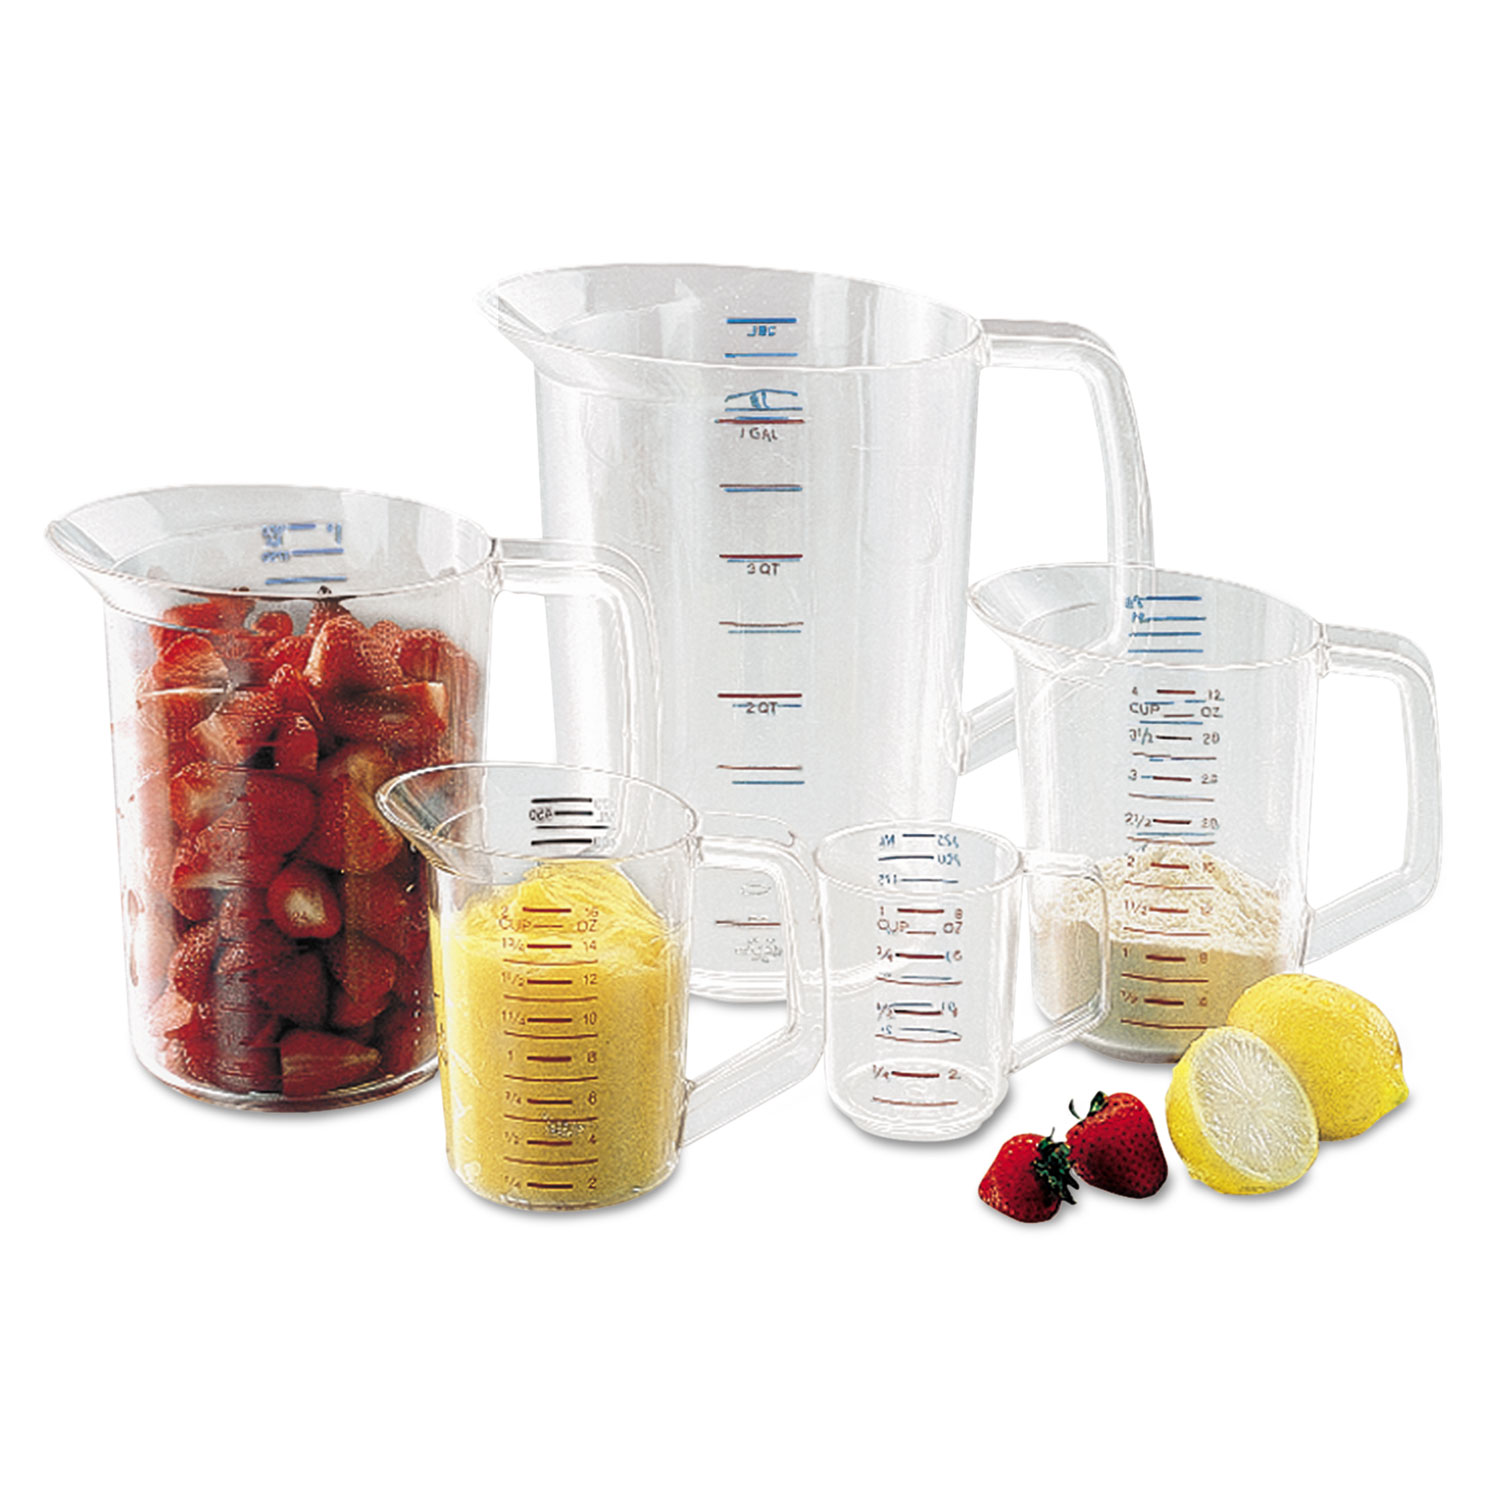 Ml Device Measuring Cups At Walmart : Upc rubbermaid commercial